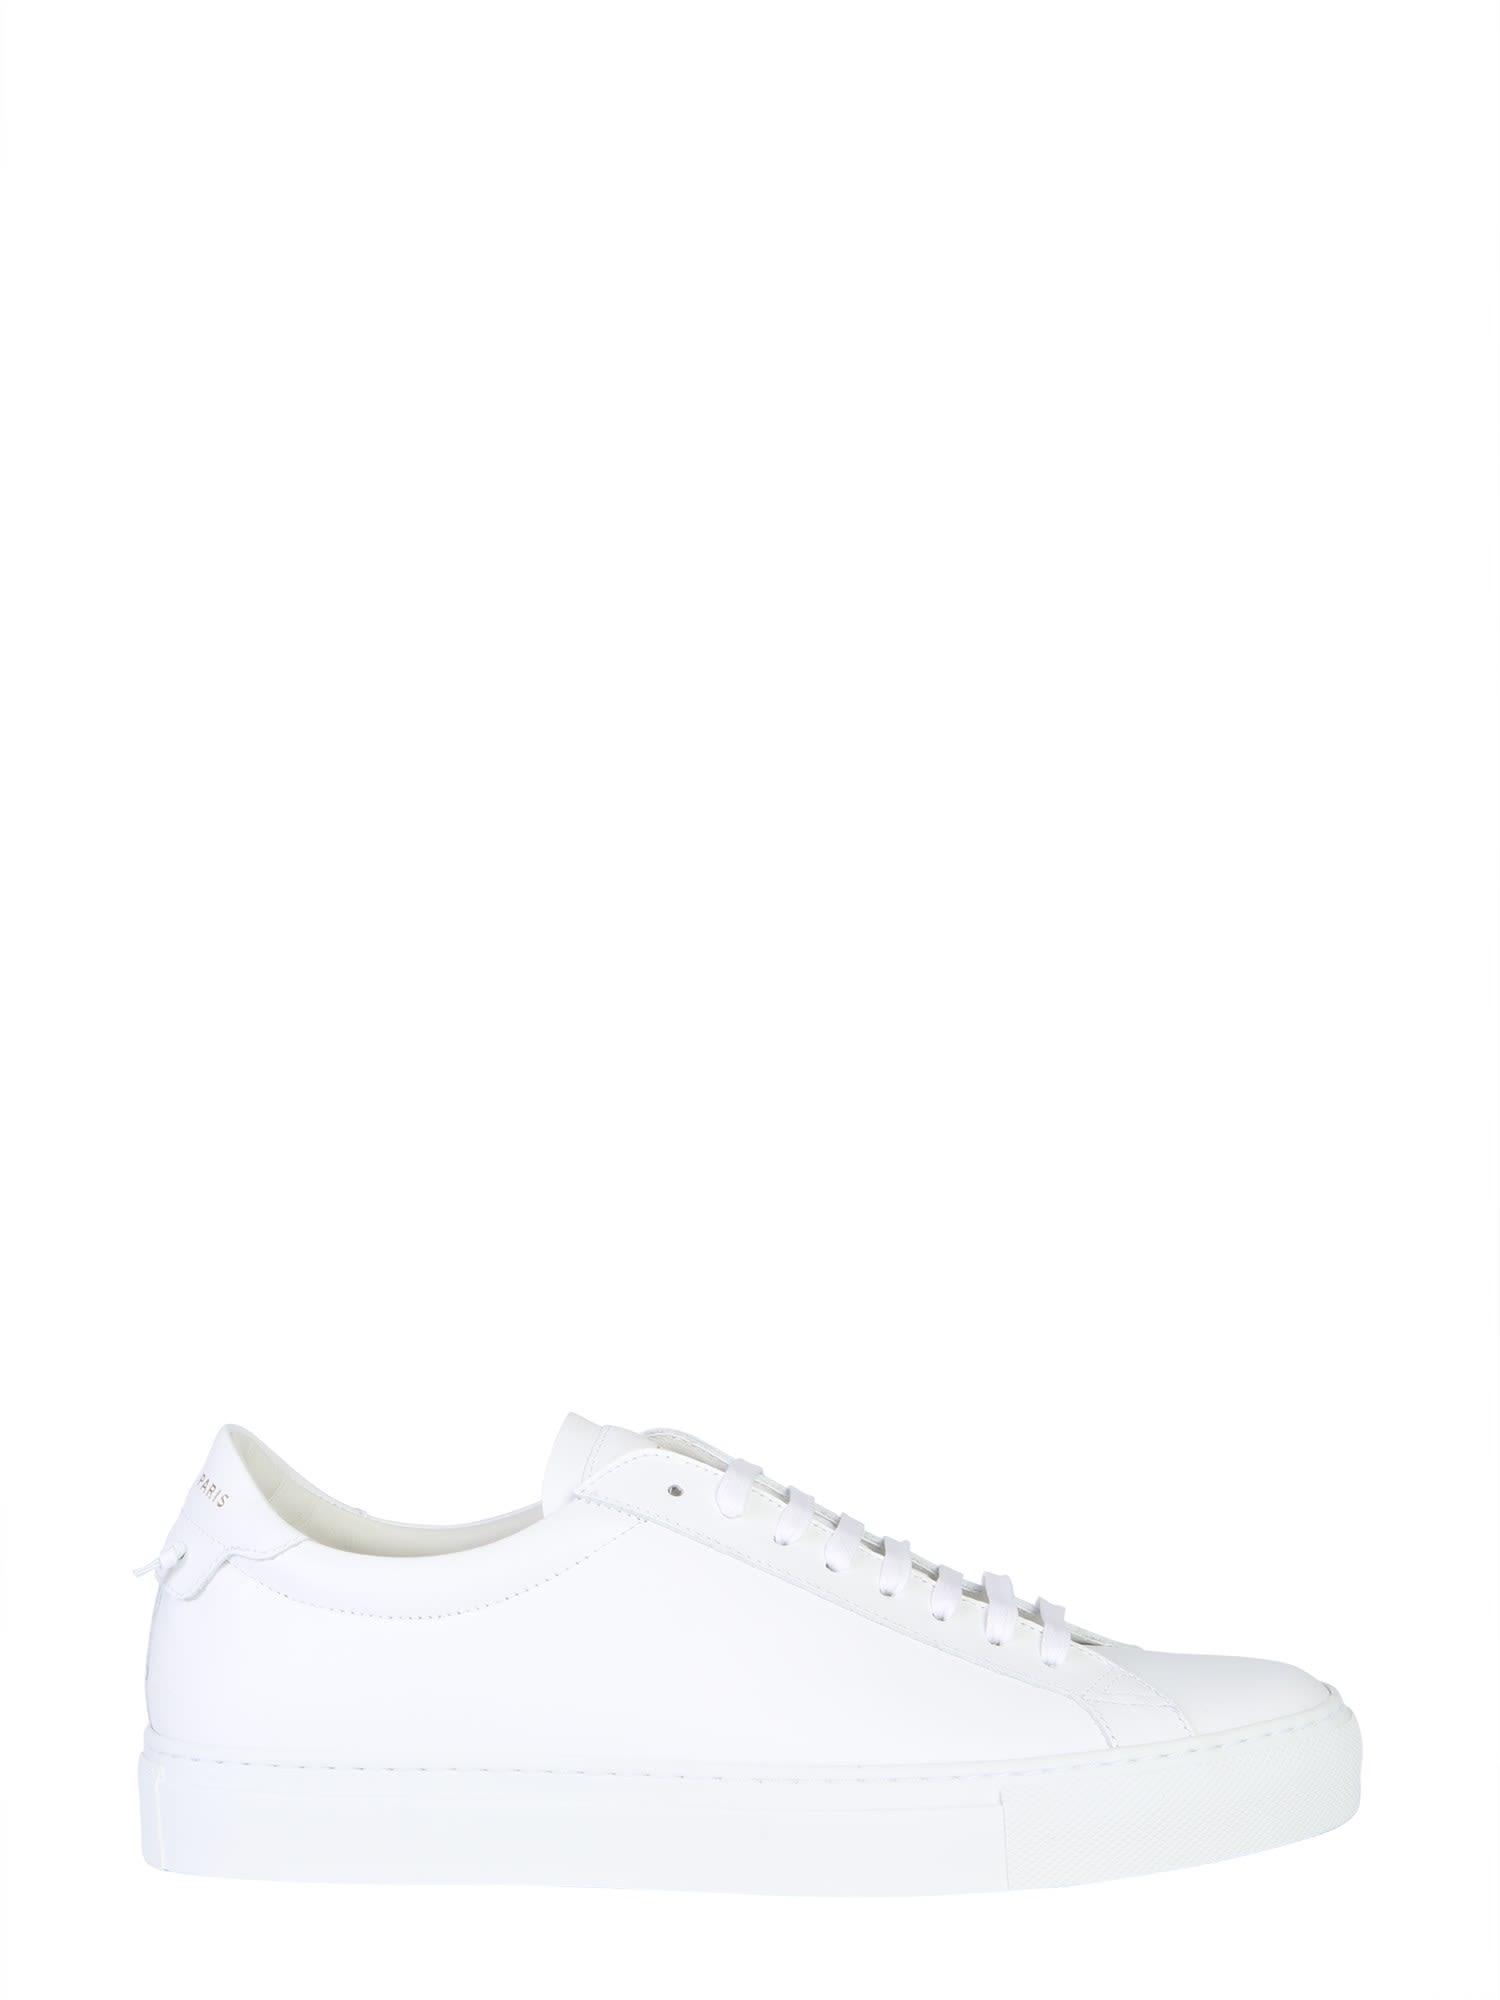 Givenchy Urban Street Low-Top Leather Trainers In White